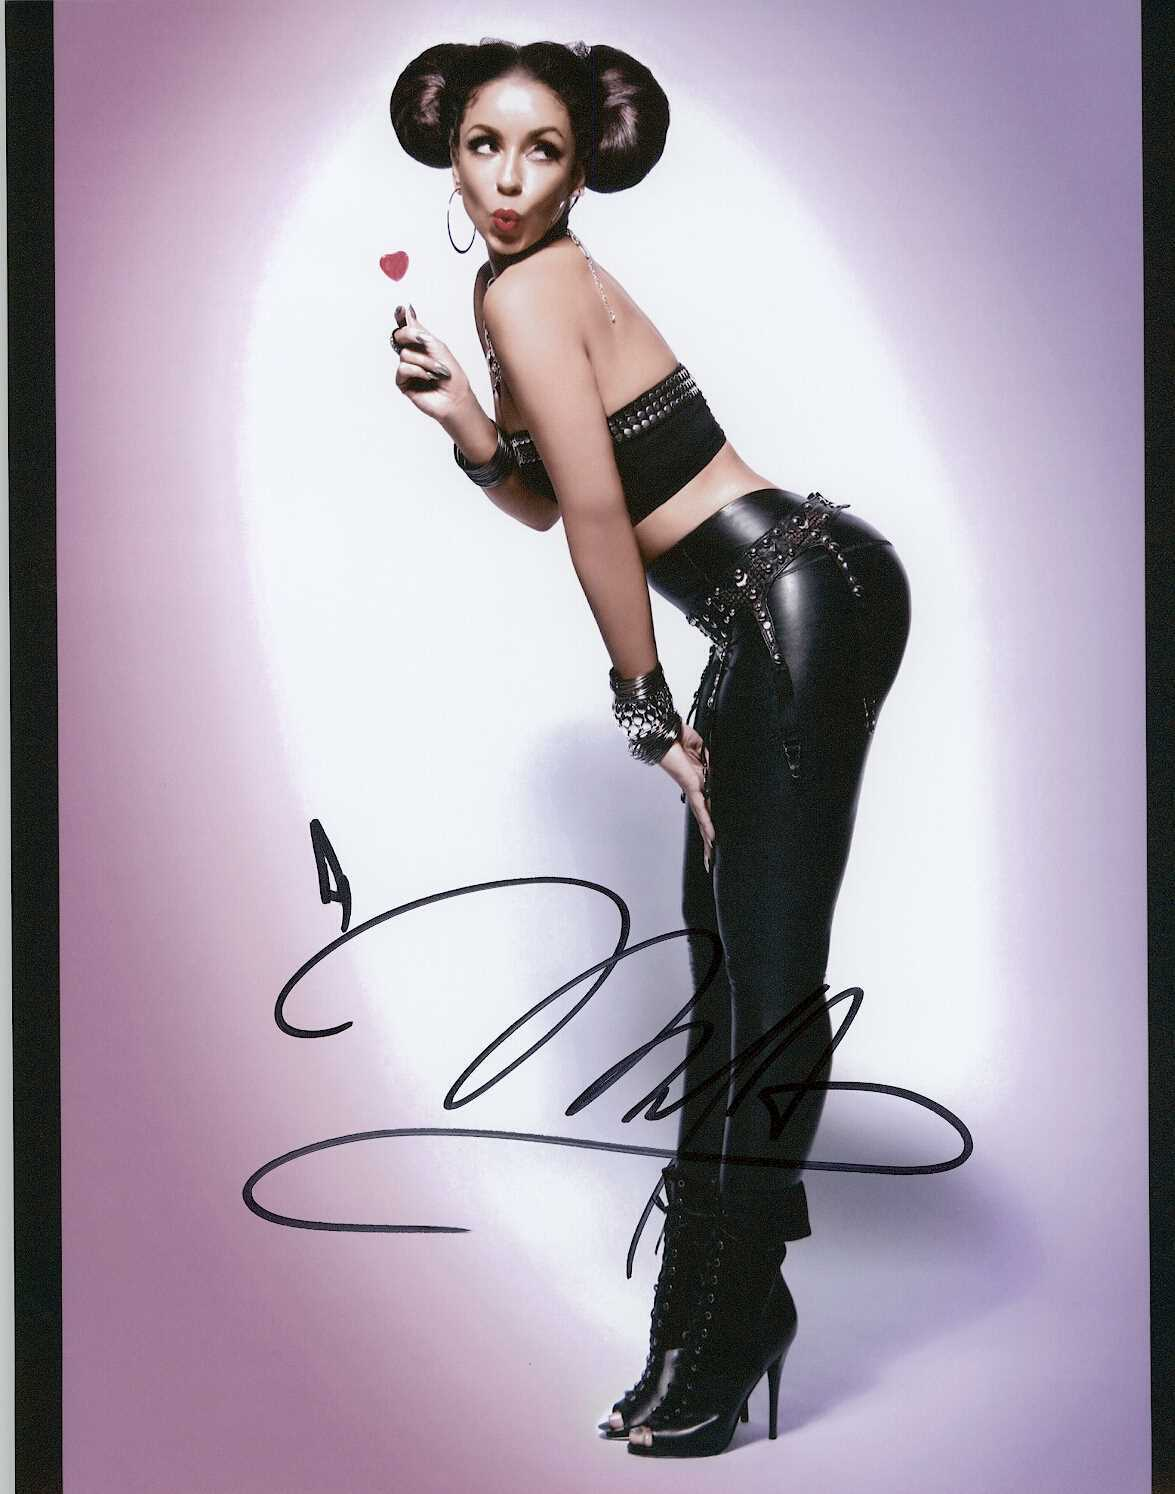 Primary image for Mya Signed Autographed Glossy 8x10 Photo